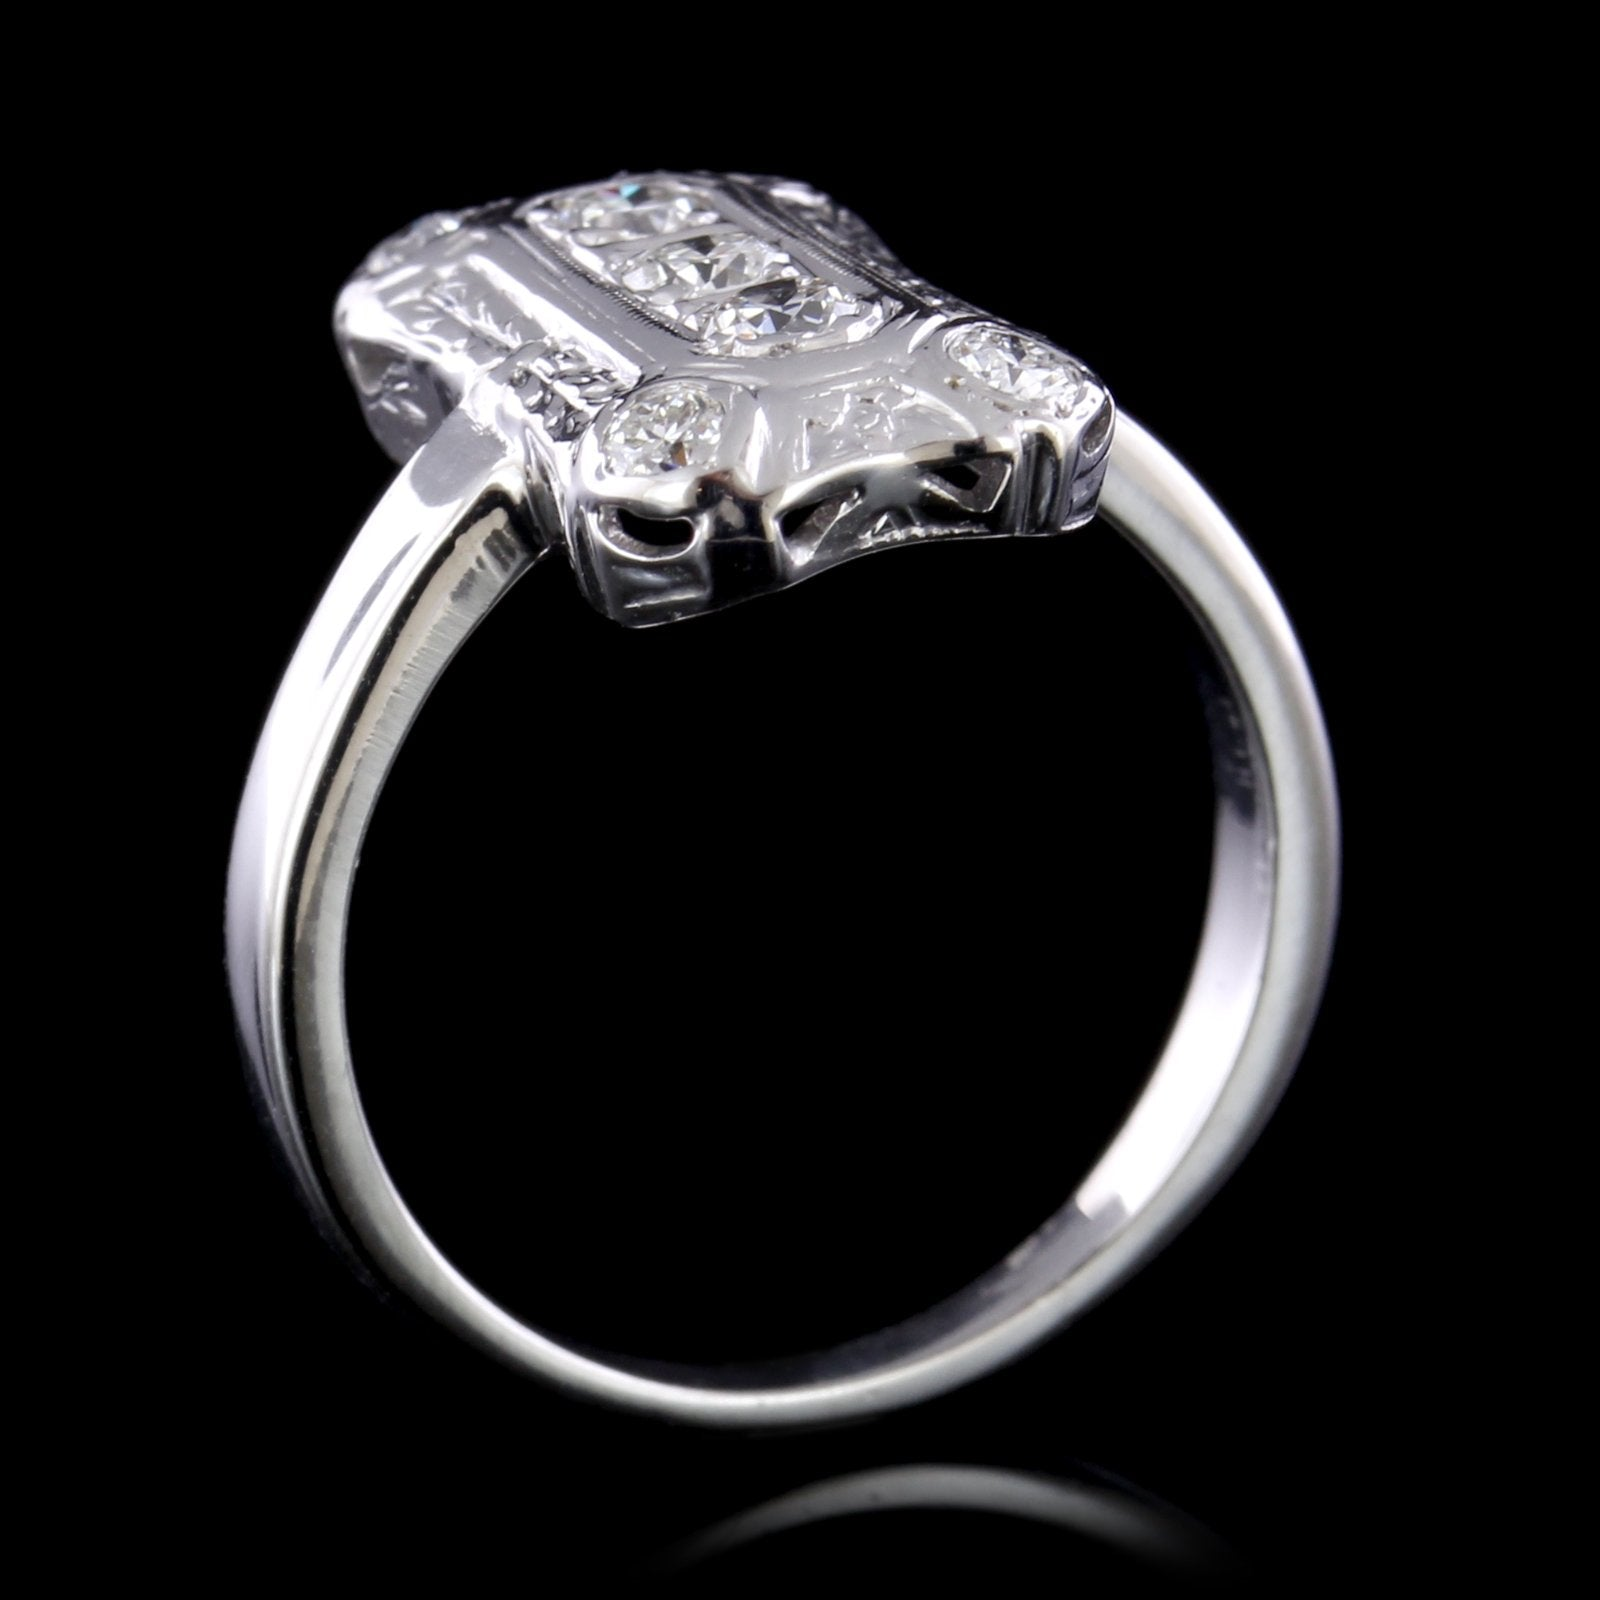 14K White Gold Vintage Style Diamond Ring